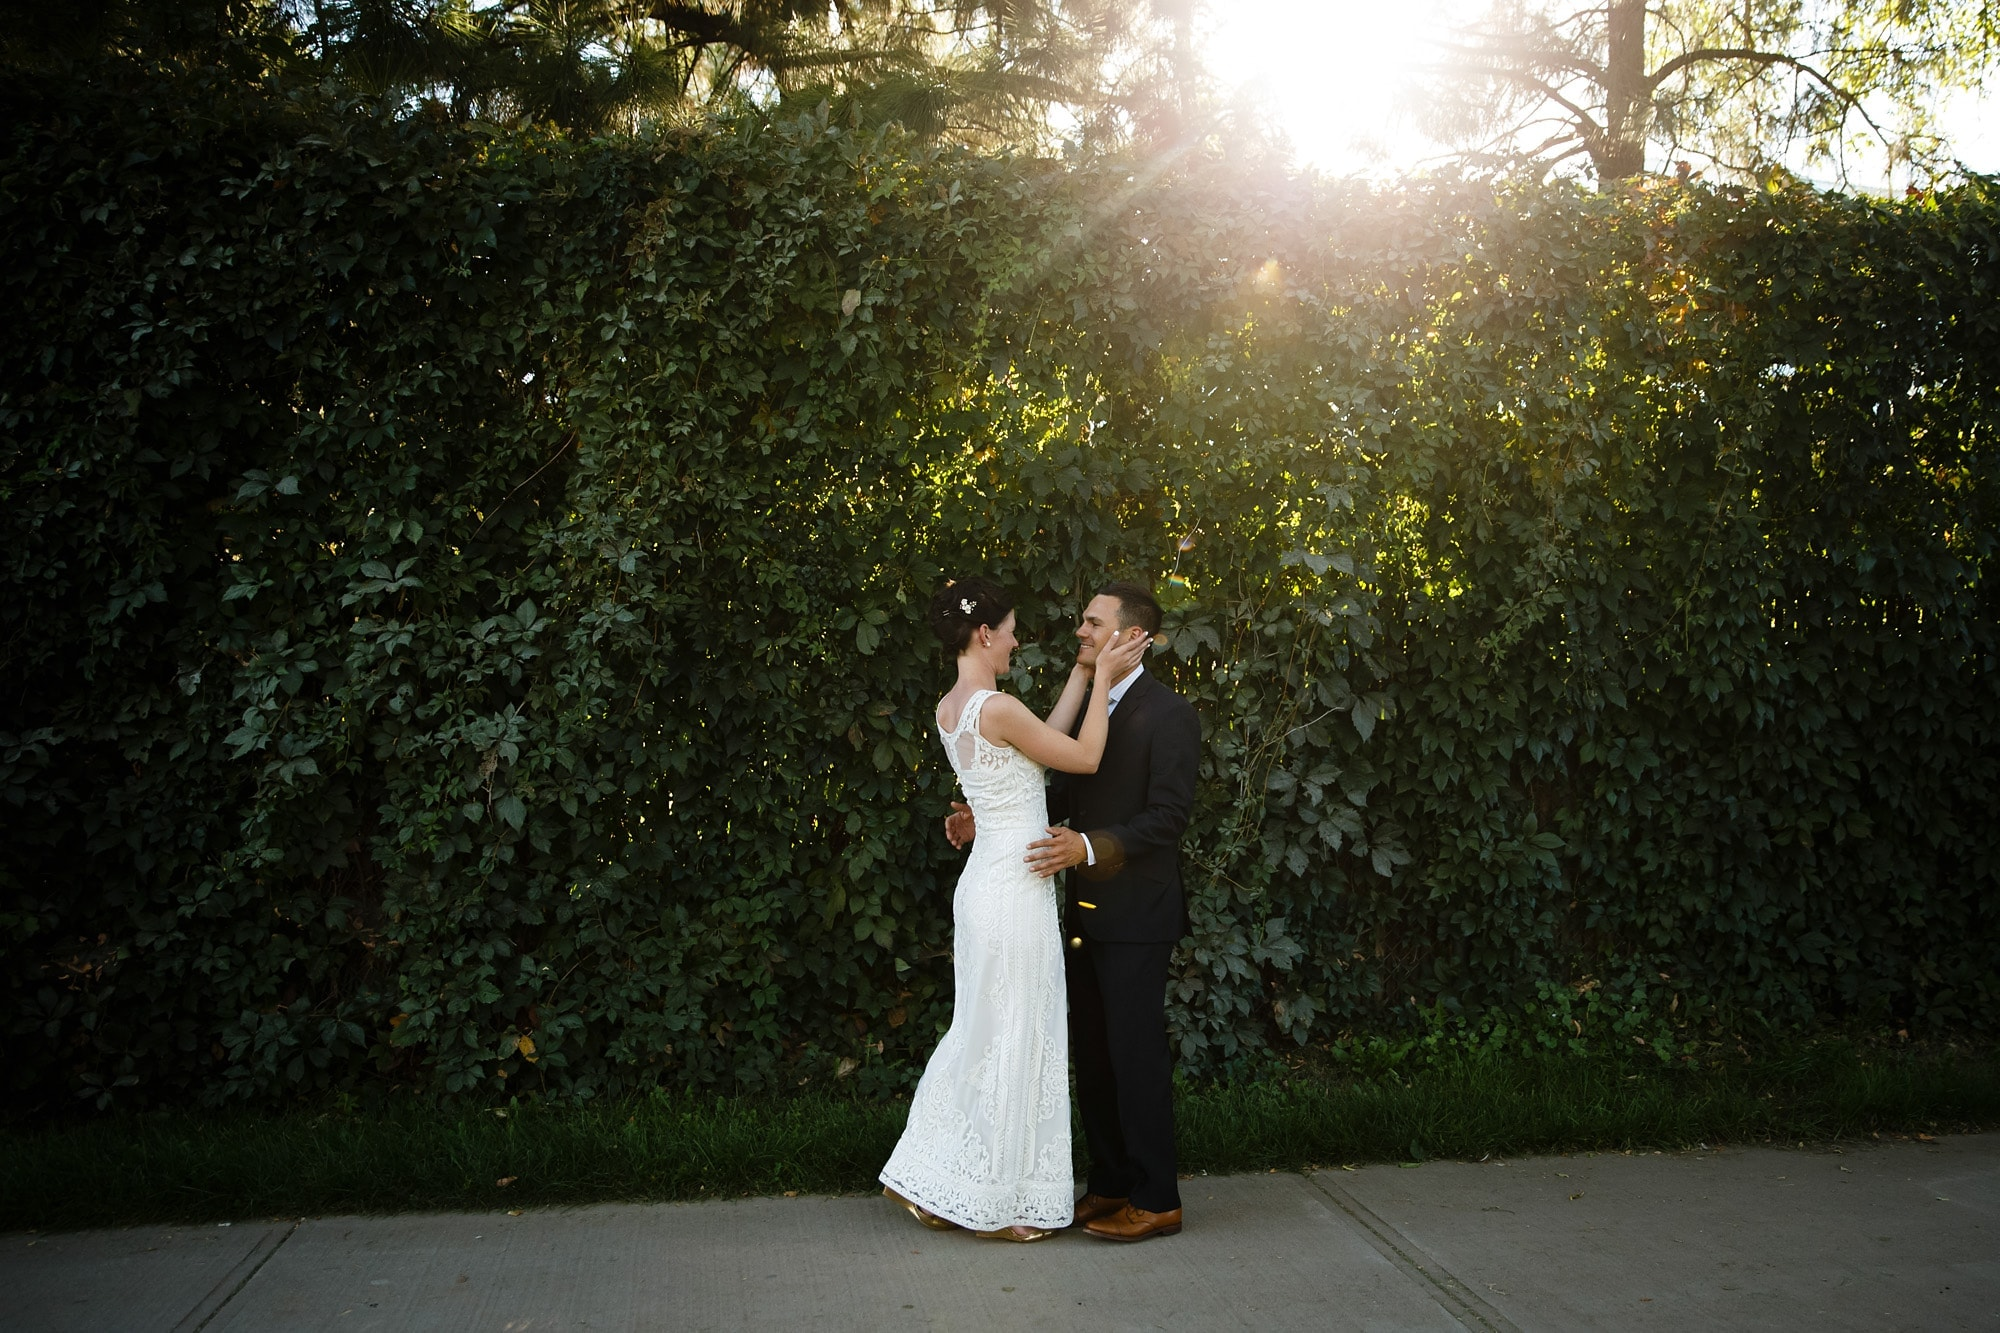 Amanda and Cuyler's first look near the Denver Zoo and Denver Museum of Nature and Science